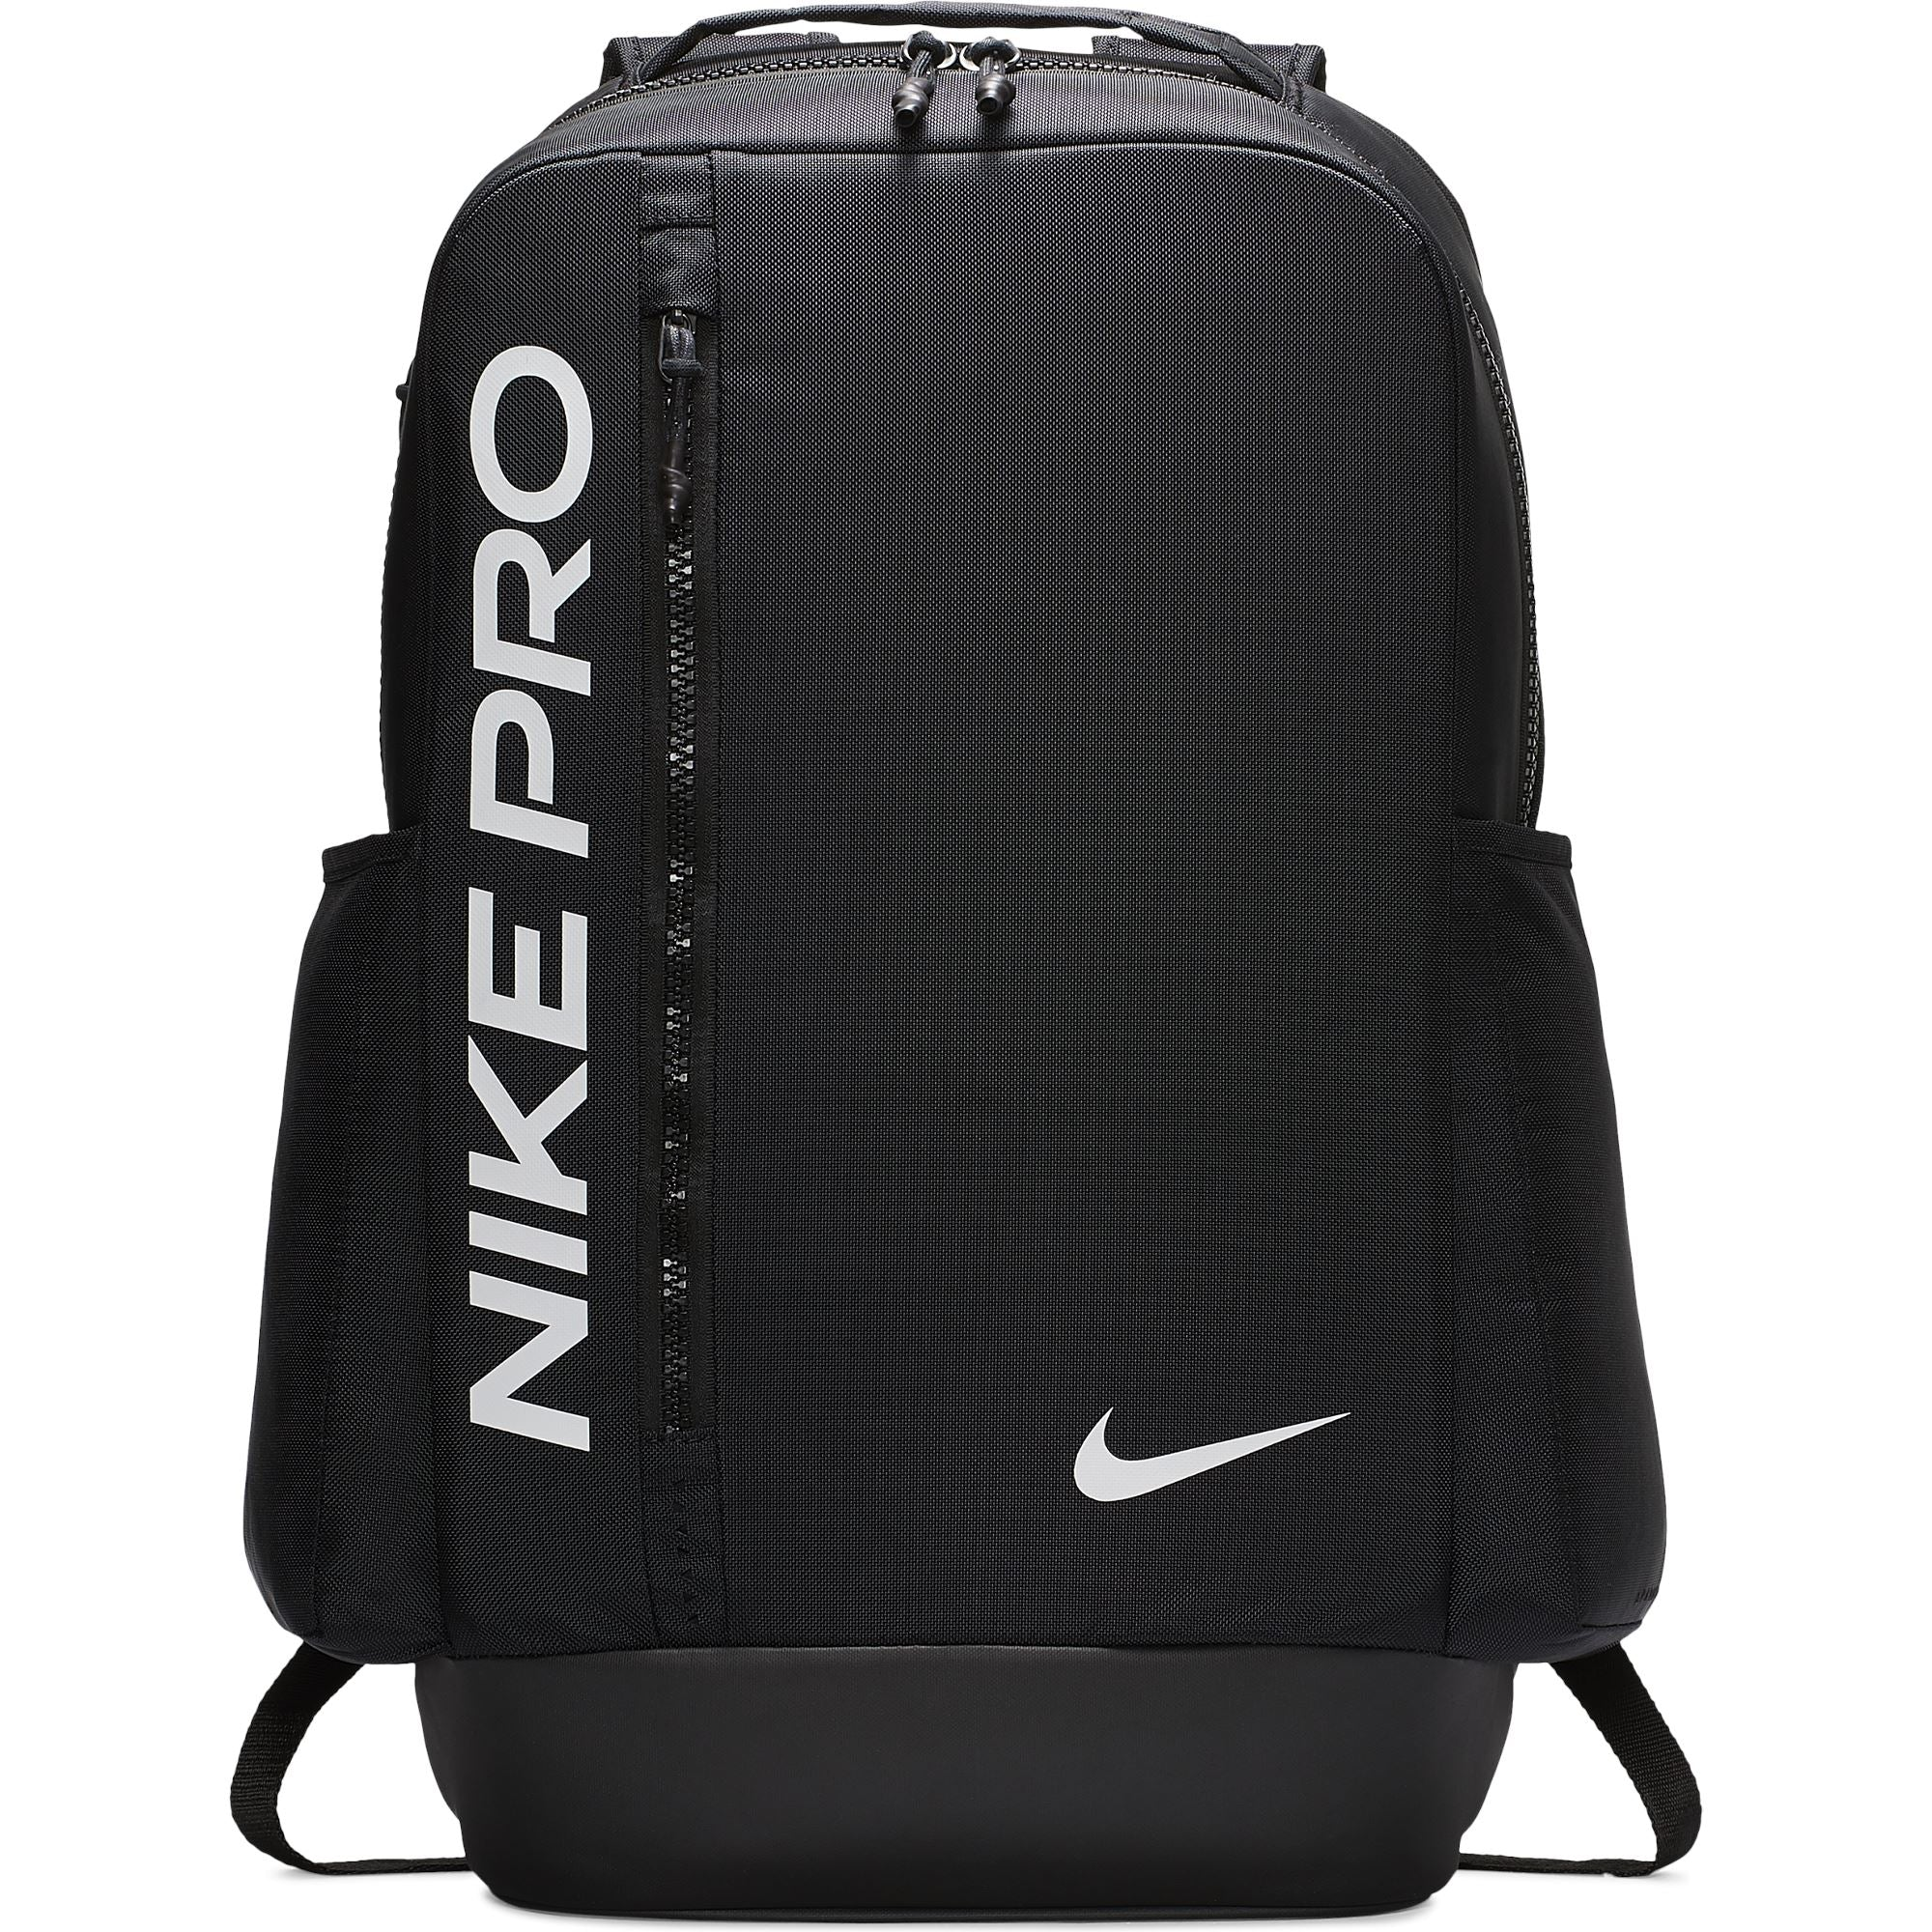 Nike Vapor Power 2.0 Graphic Training Backpack - Black/White SP-Accessories-Bags Nike